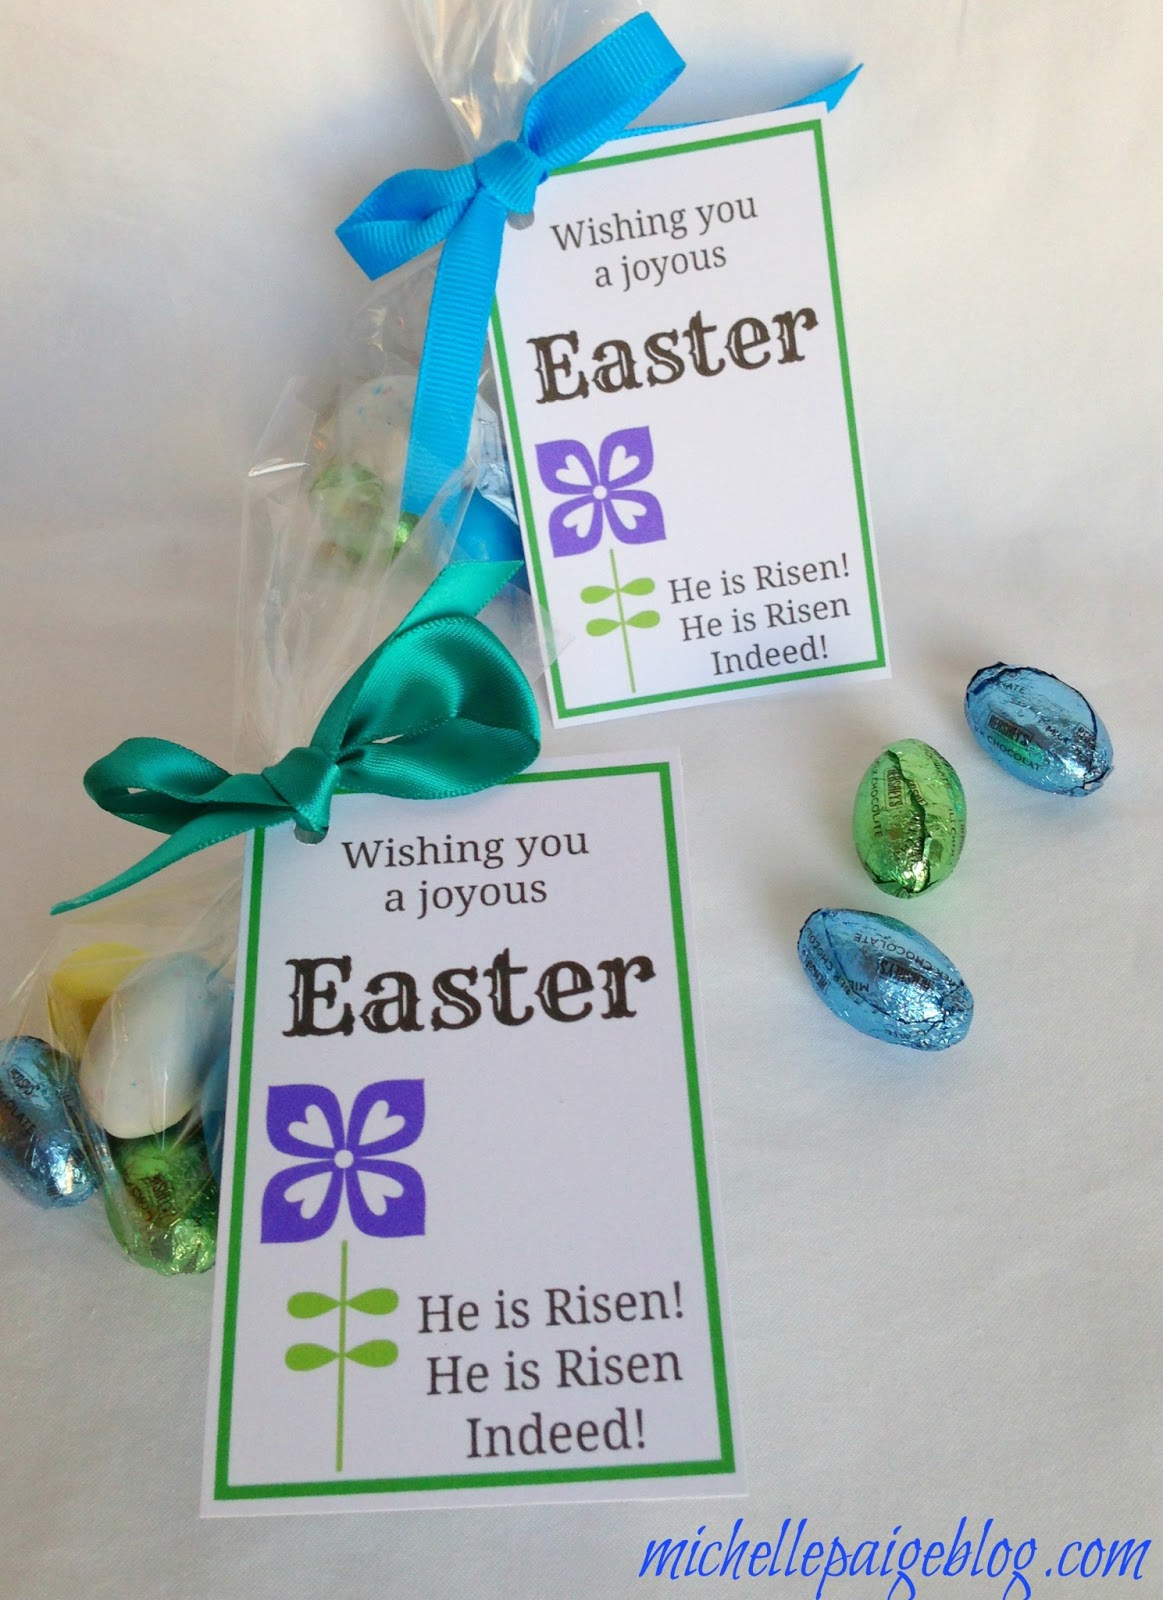 Michelle paige blogs easter favors for teachers friends and family easter favors for teachers friends and family negle